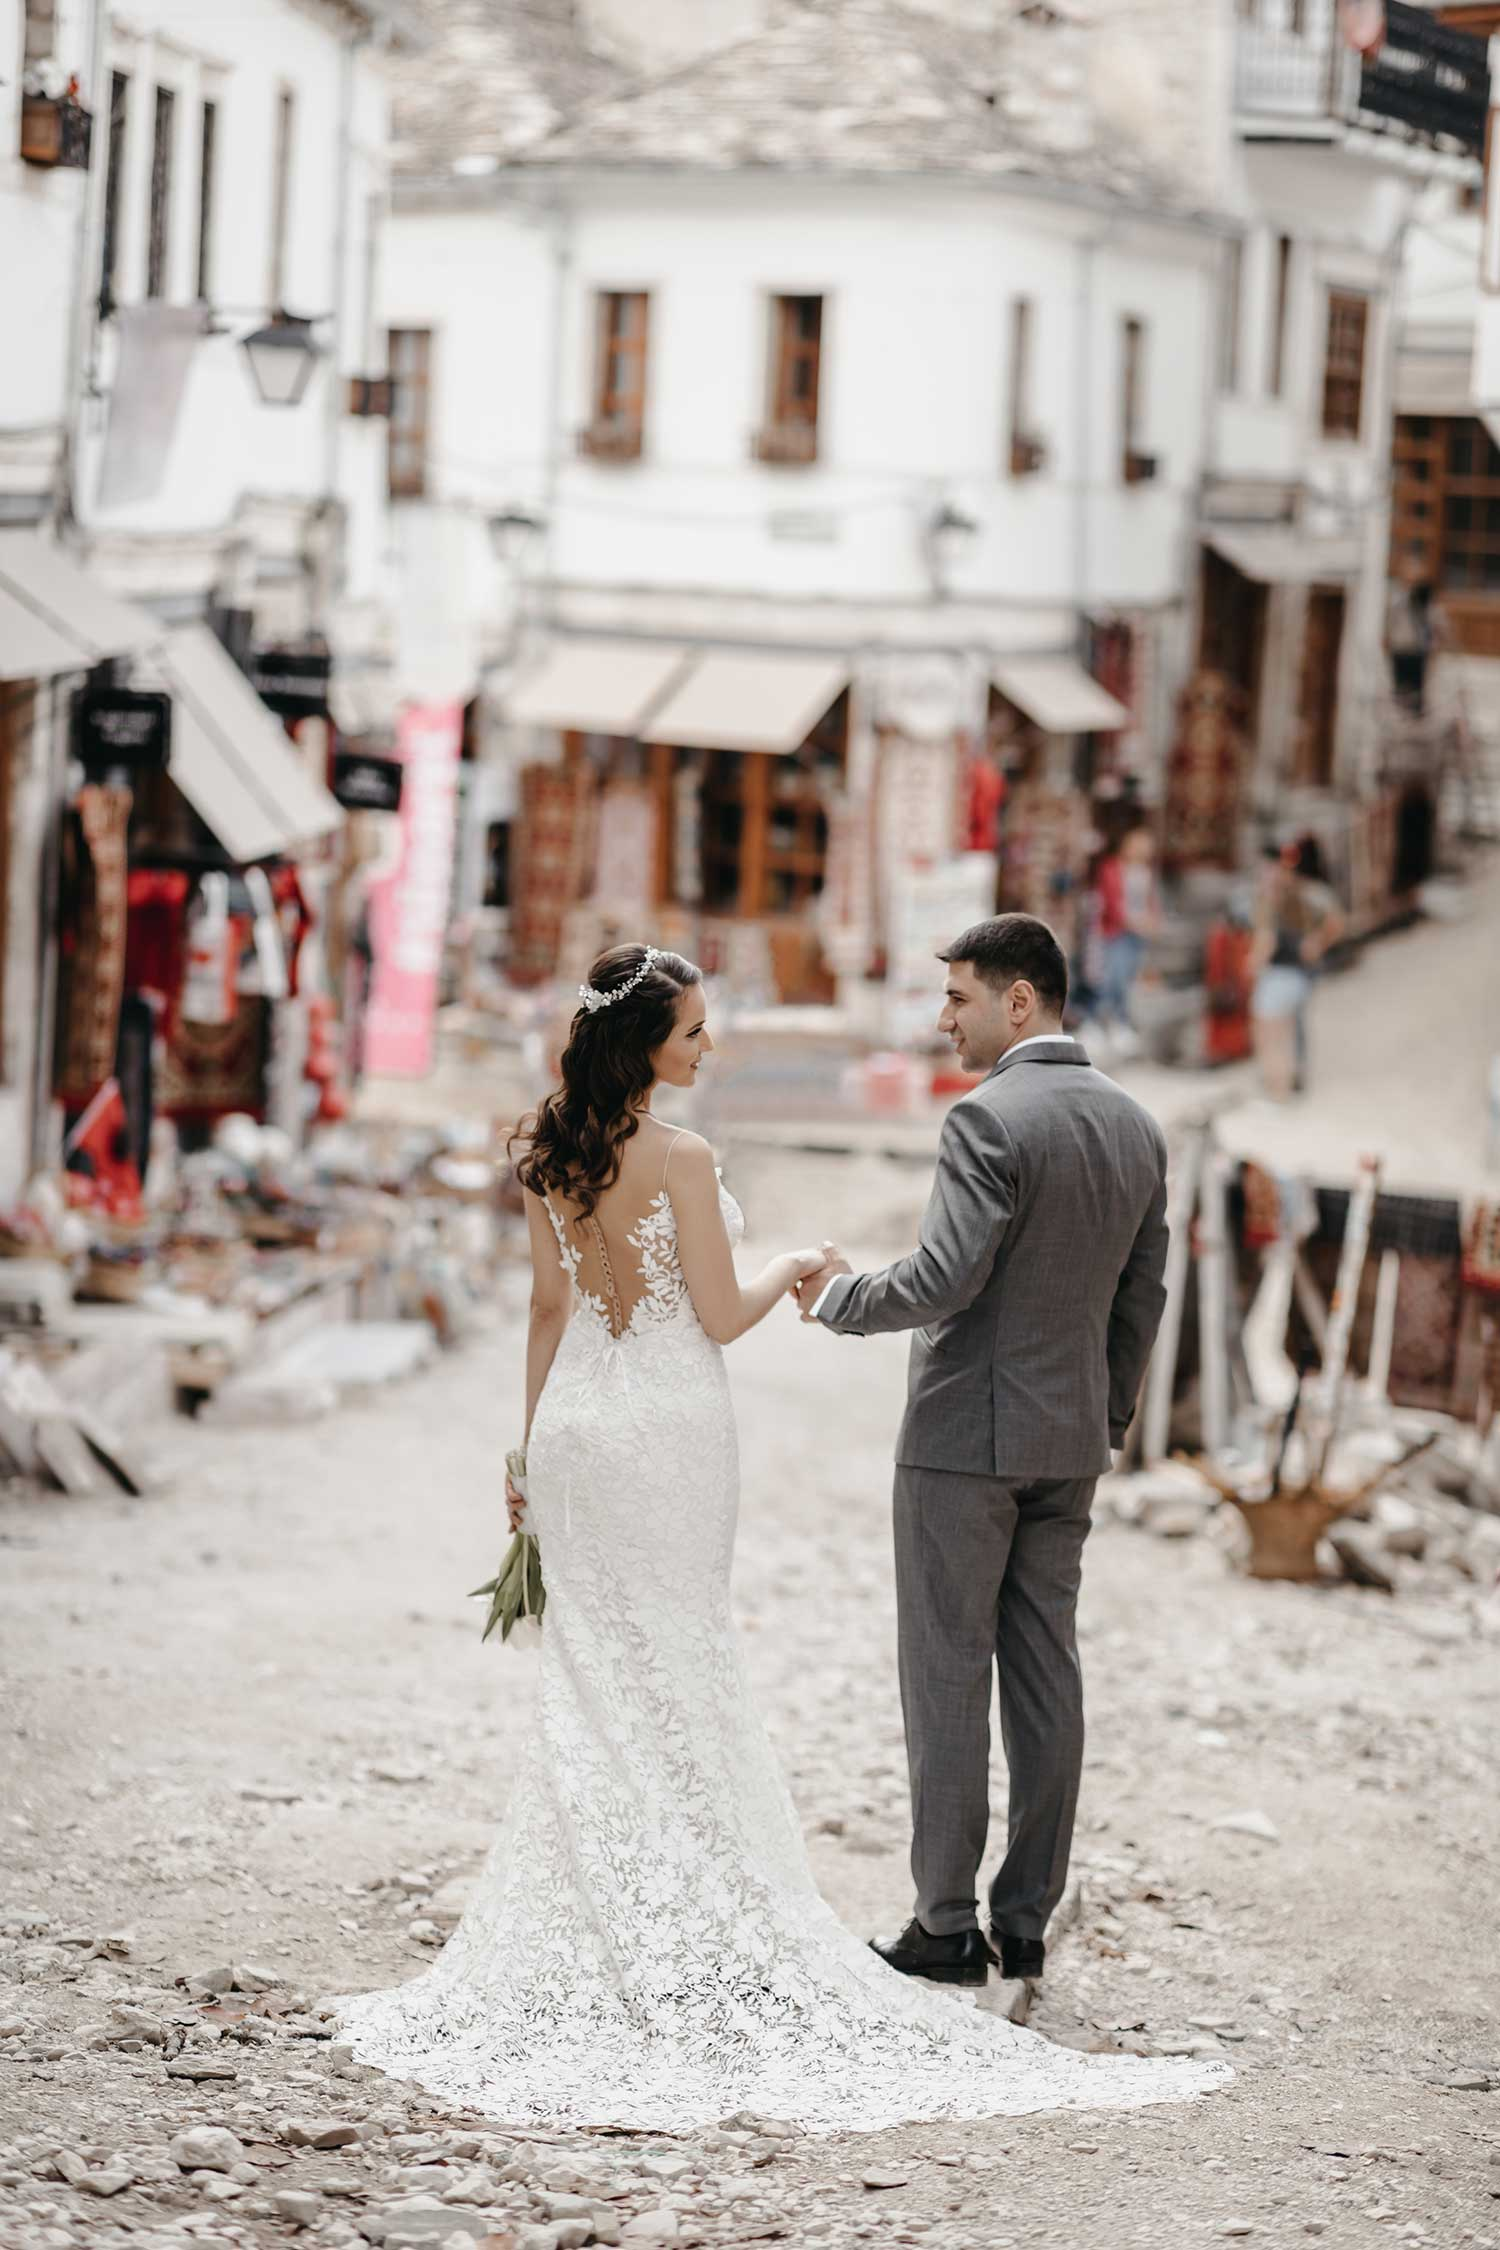 Bride and groom posing in the old bazaar